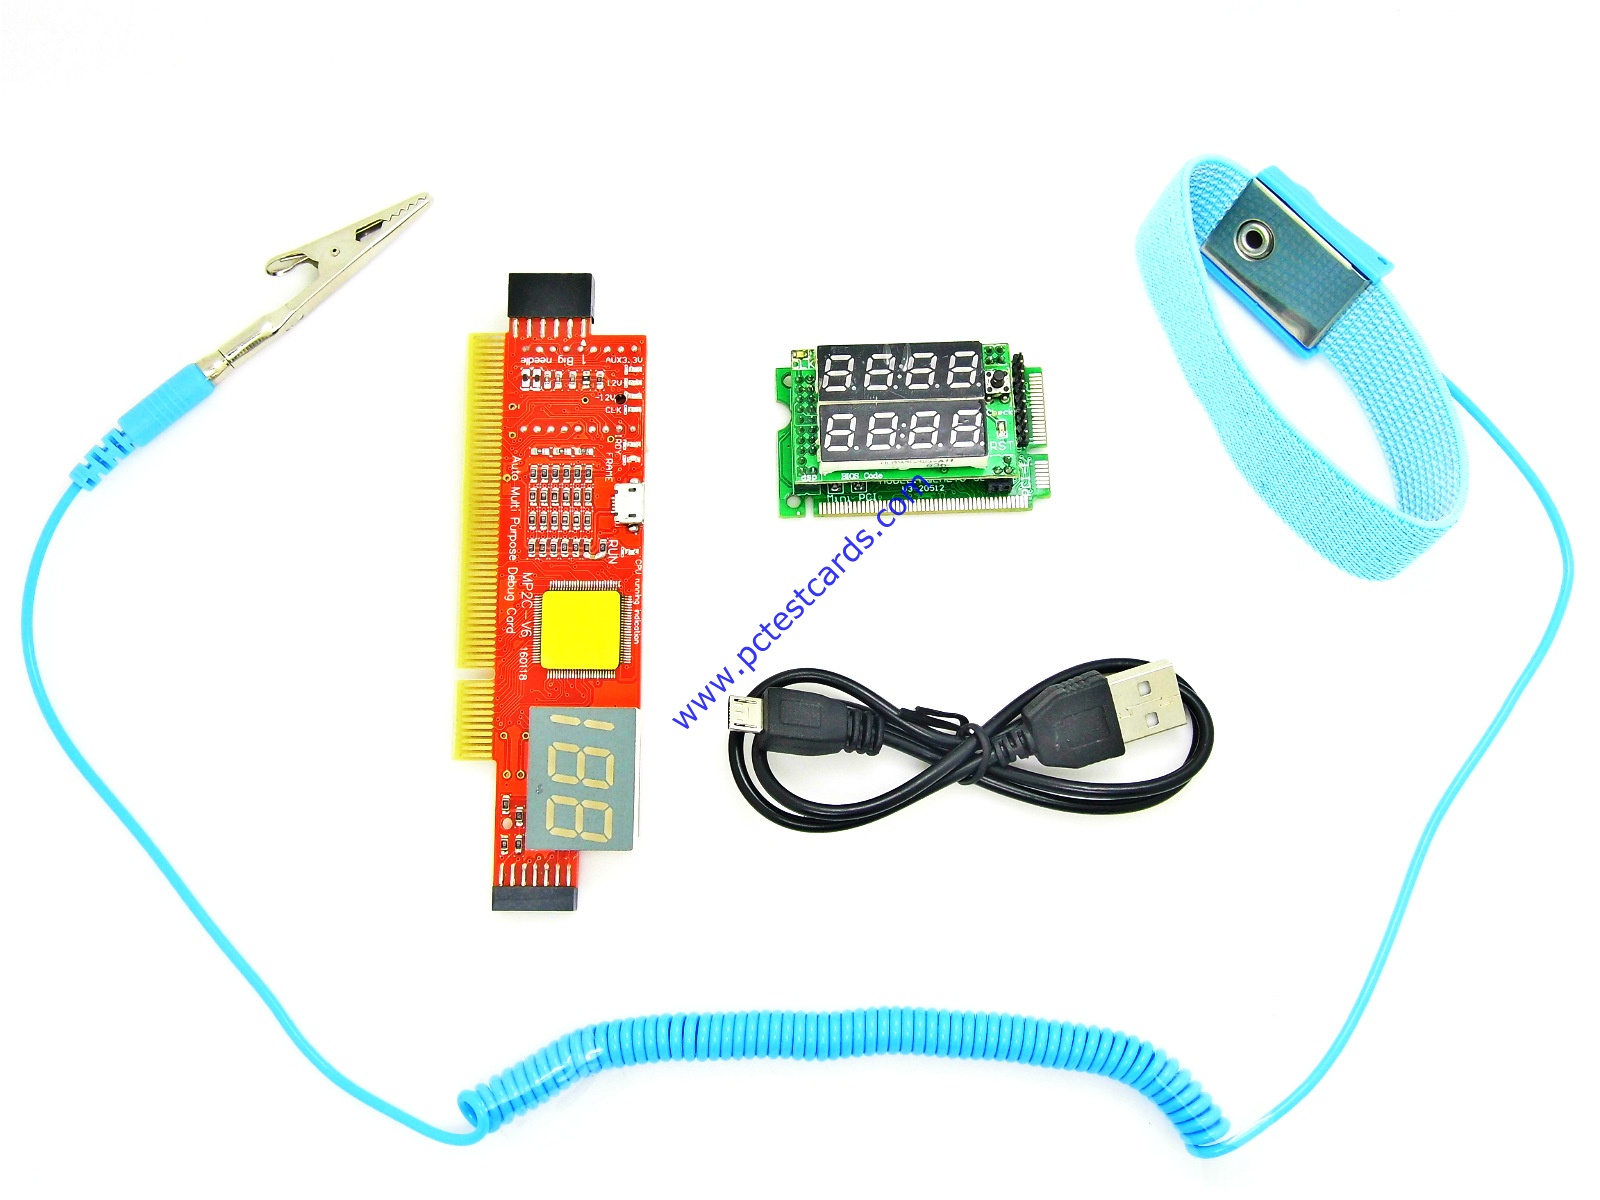 New PC and Laptop Motherboard Diagnostic Test Cards Kit (STC-SP+LMC8)